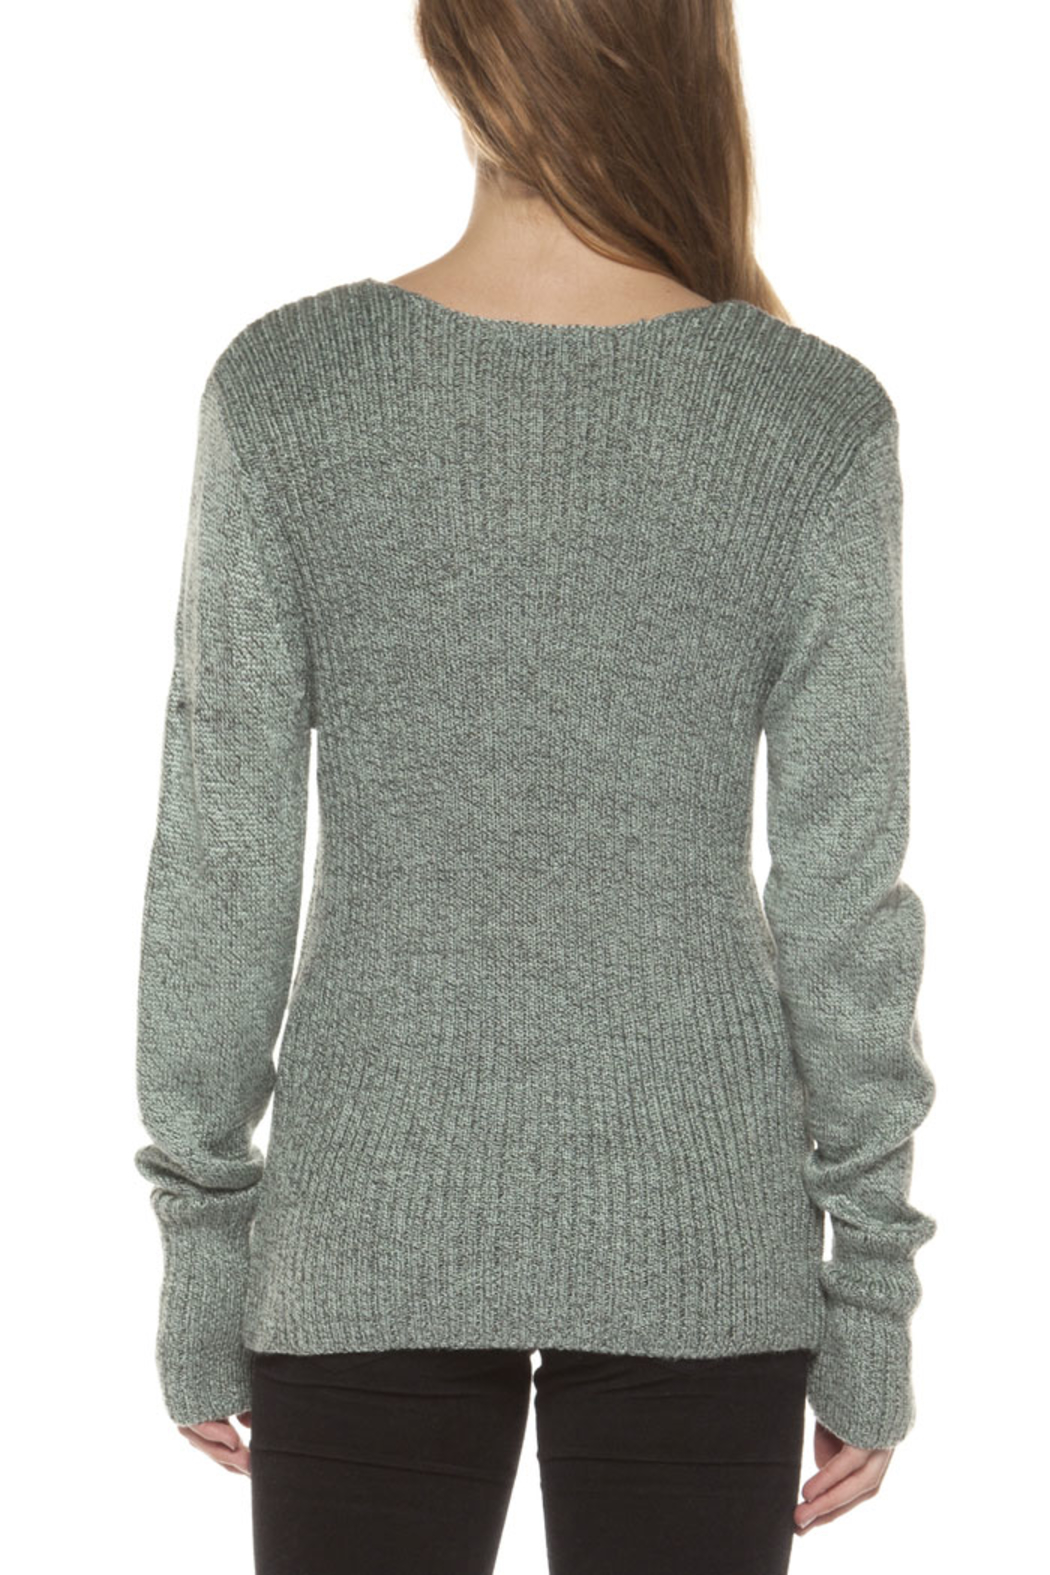 Dex Crossed Sweater Top - Back Cropped Image